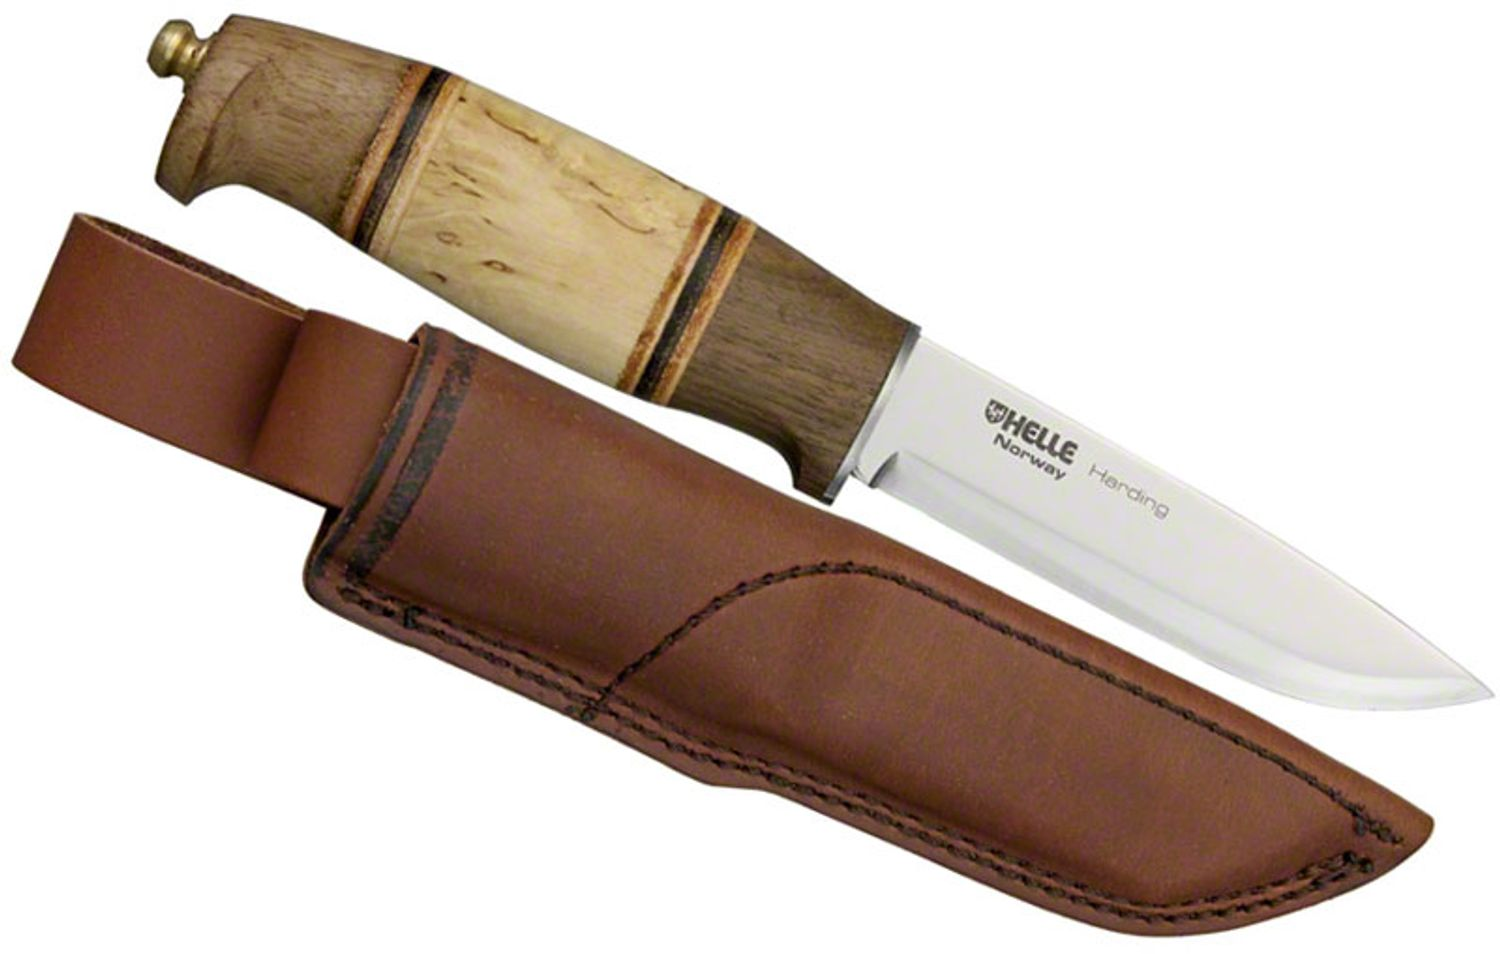 Helle Harding Hunting Knife 4 Blade Walnut And Curly Birch Handle Leather Sheath Knifecenter 99